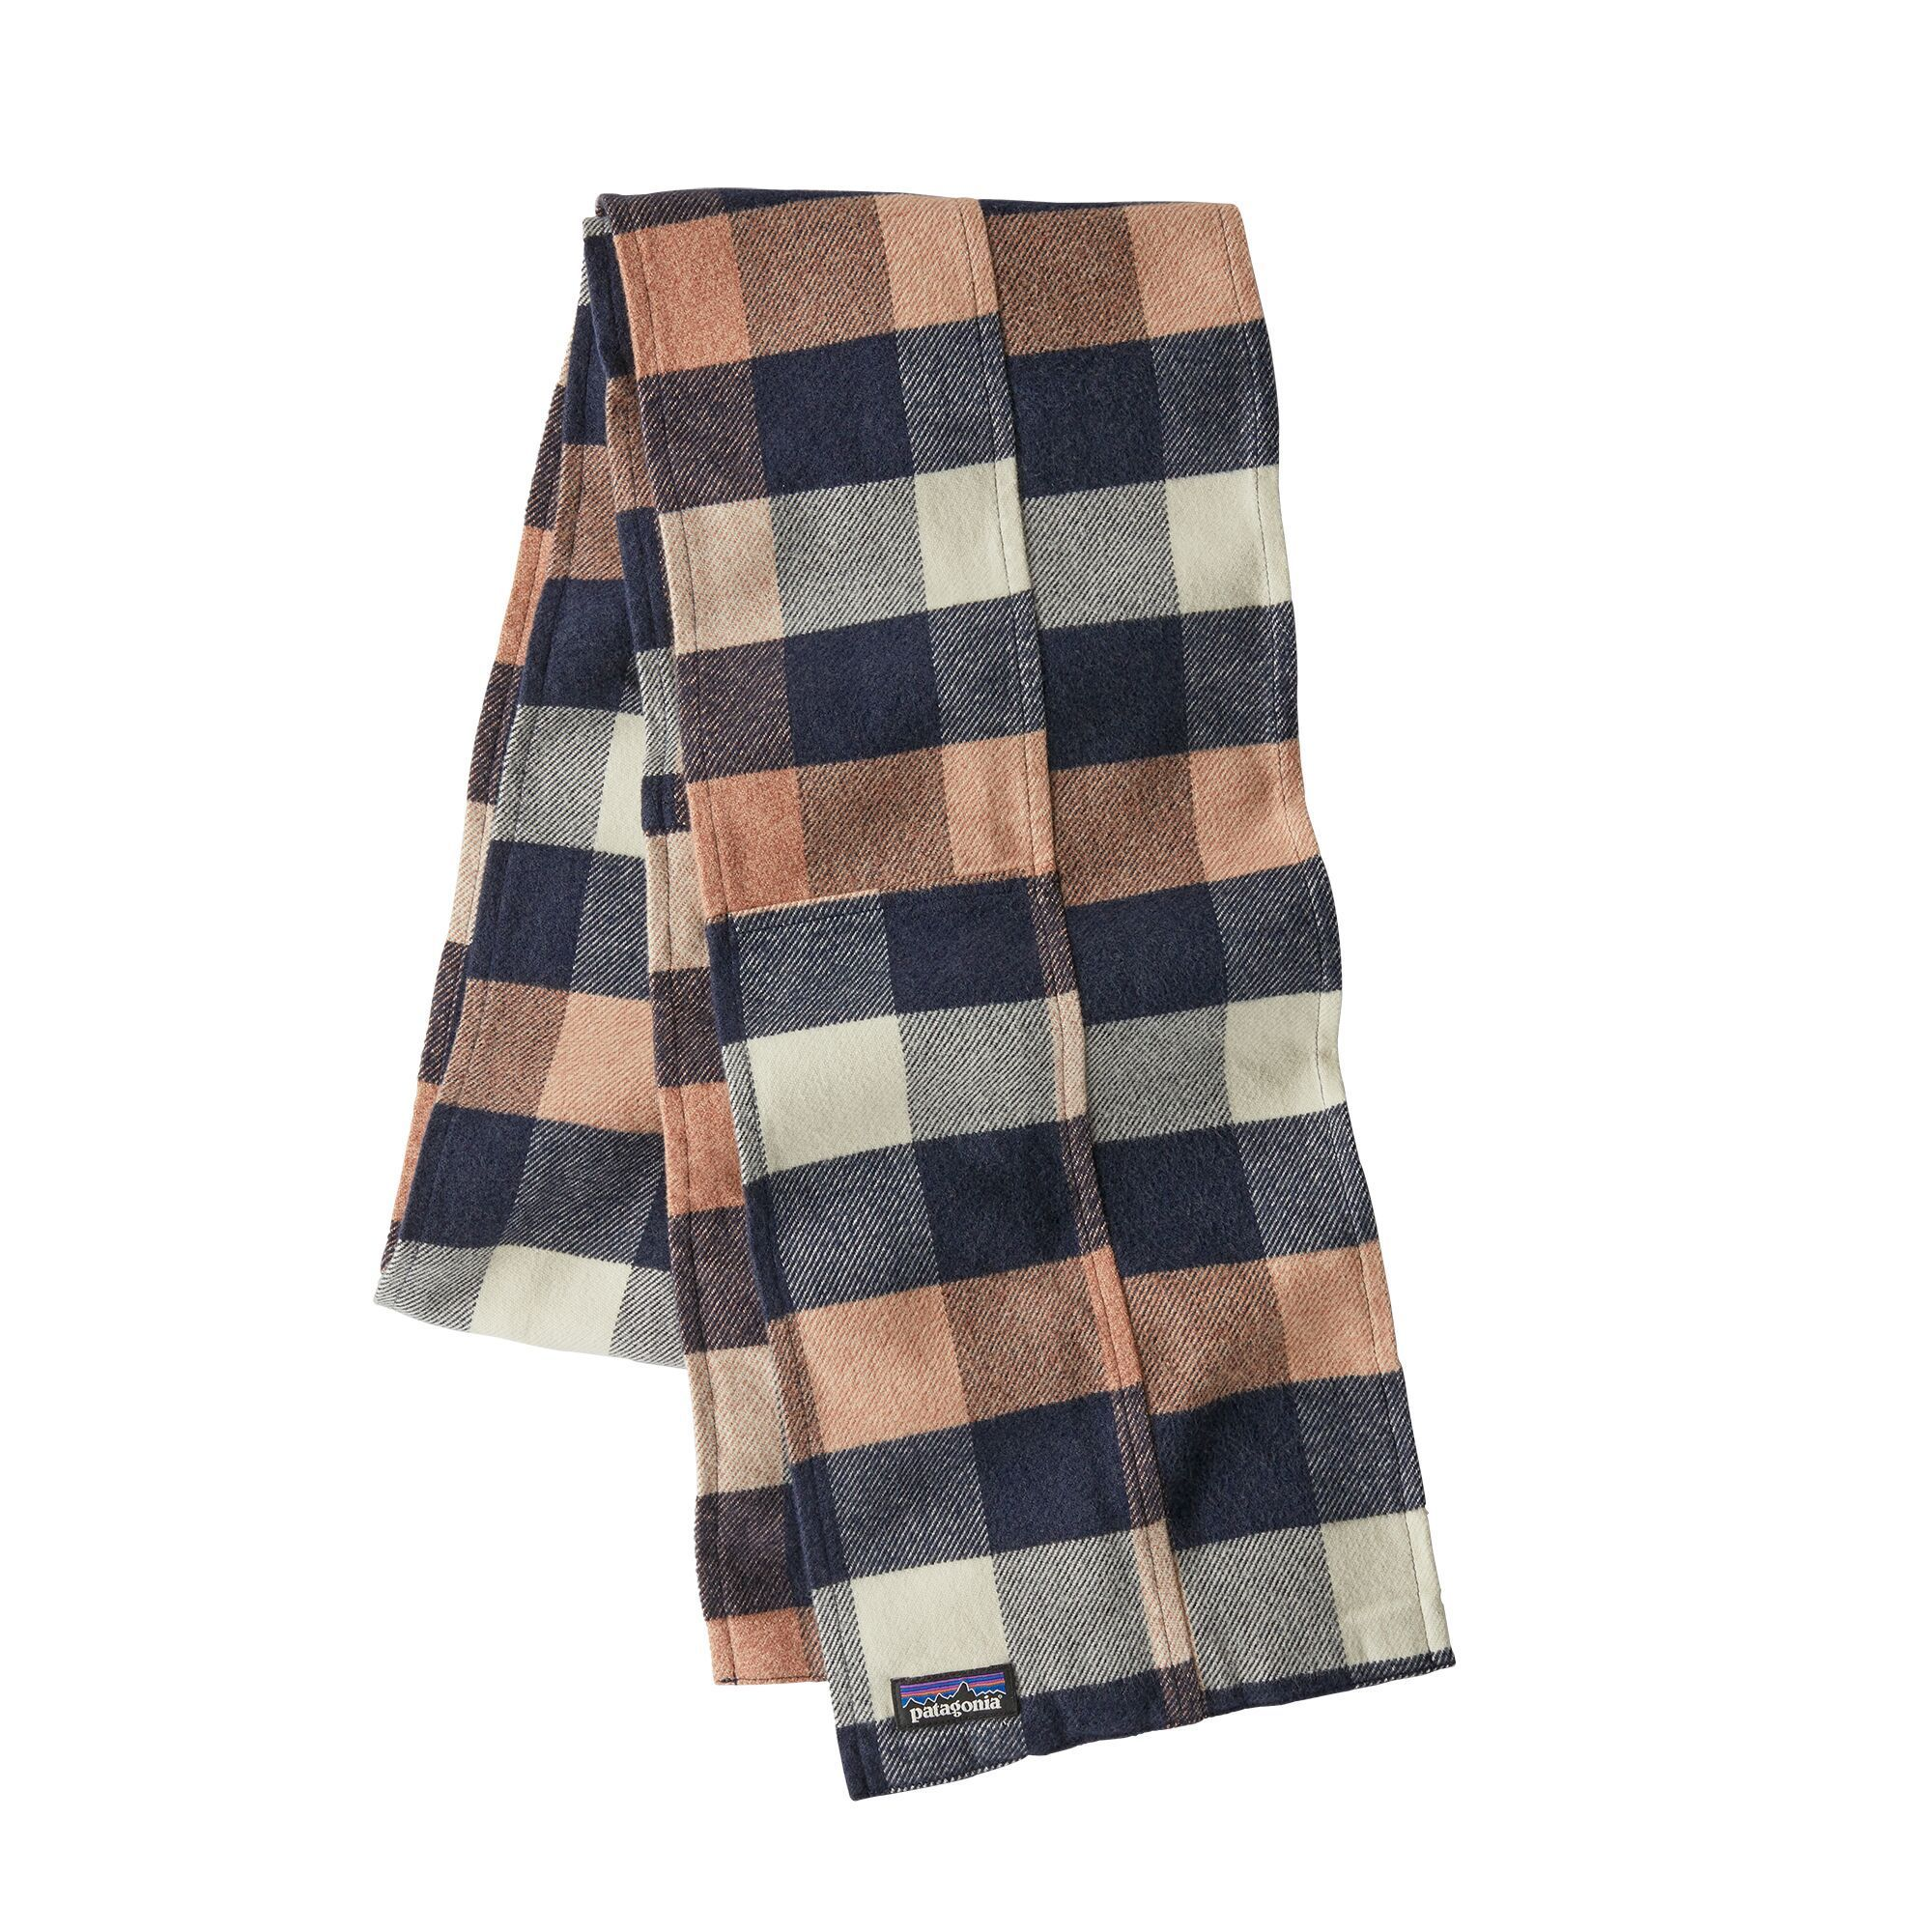 Patagonia - Women's Fjord Flannel Patchwork Scarf - Upriver: Century Pink - Organic Cotton - Weekendbee - sustainable sportswear